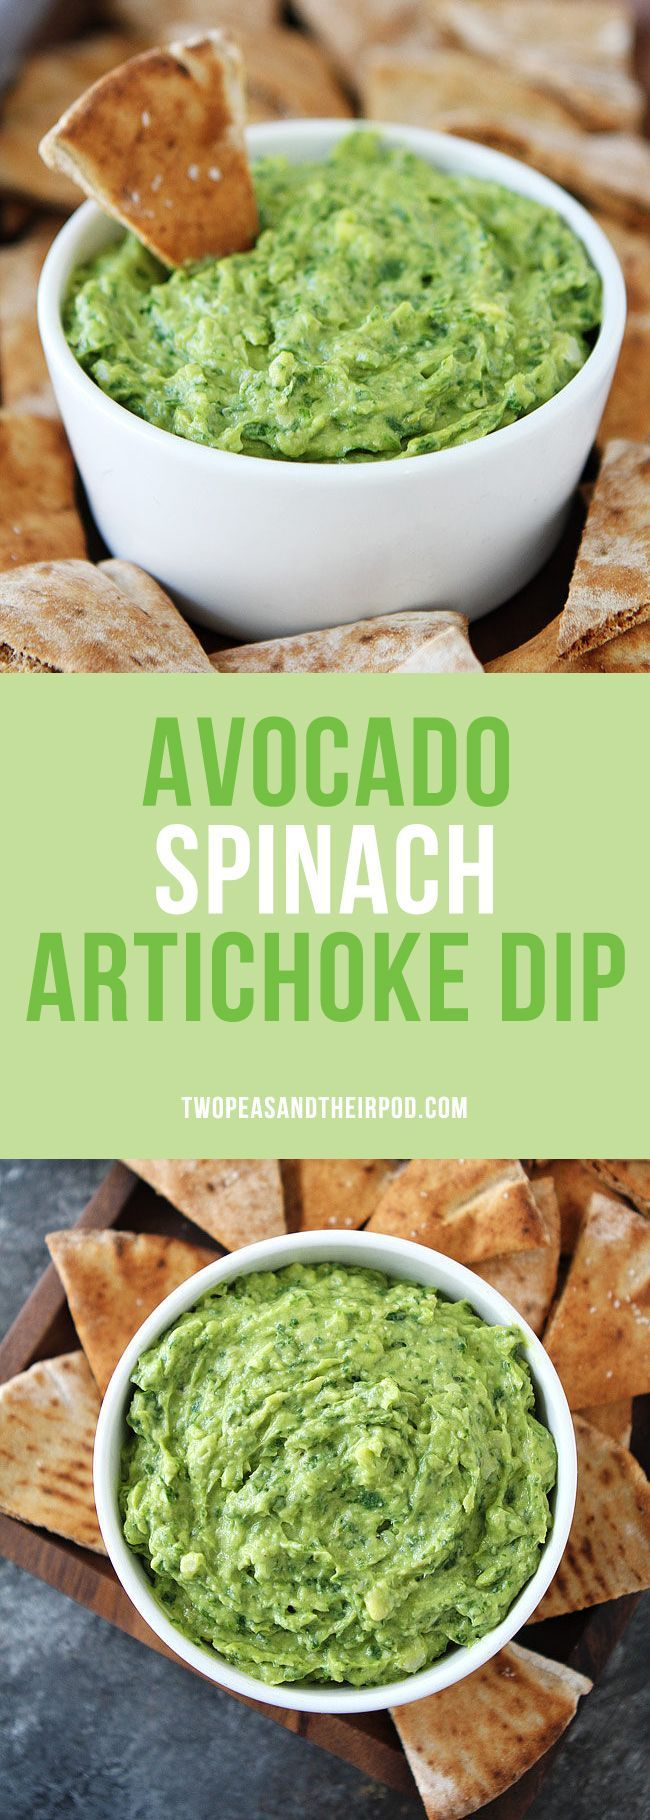 Avocado Spinach Artichoke Dip is the perfect dip for parties, potlucks, game day, and every day snacking. It is vegan, gluten-free, dairy-free, and SO delicious! Serve with pita chips, crackers, or cut up vegetables. Everyone loves this easy and healthy dip! #stpatricksday